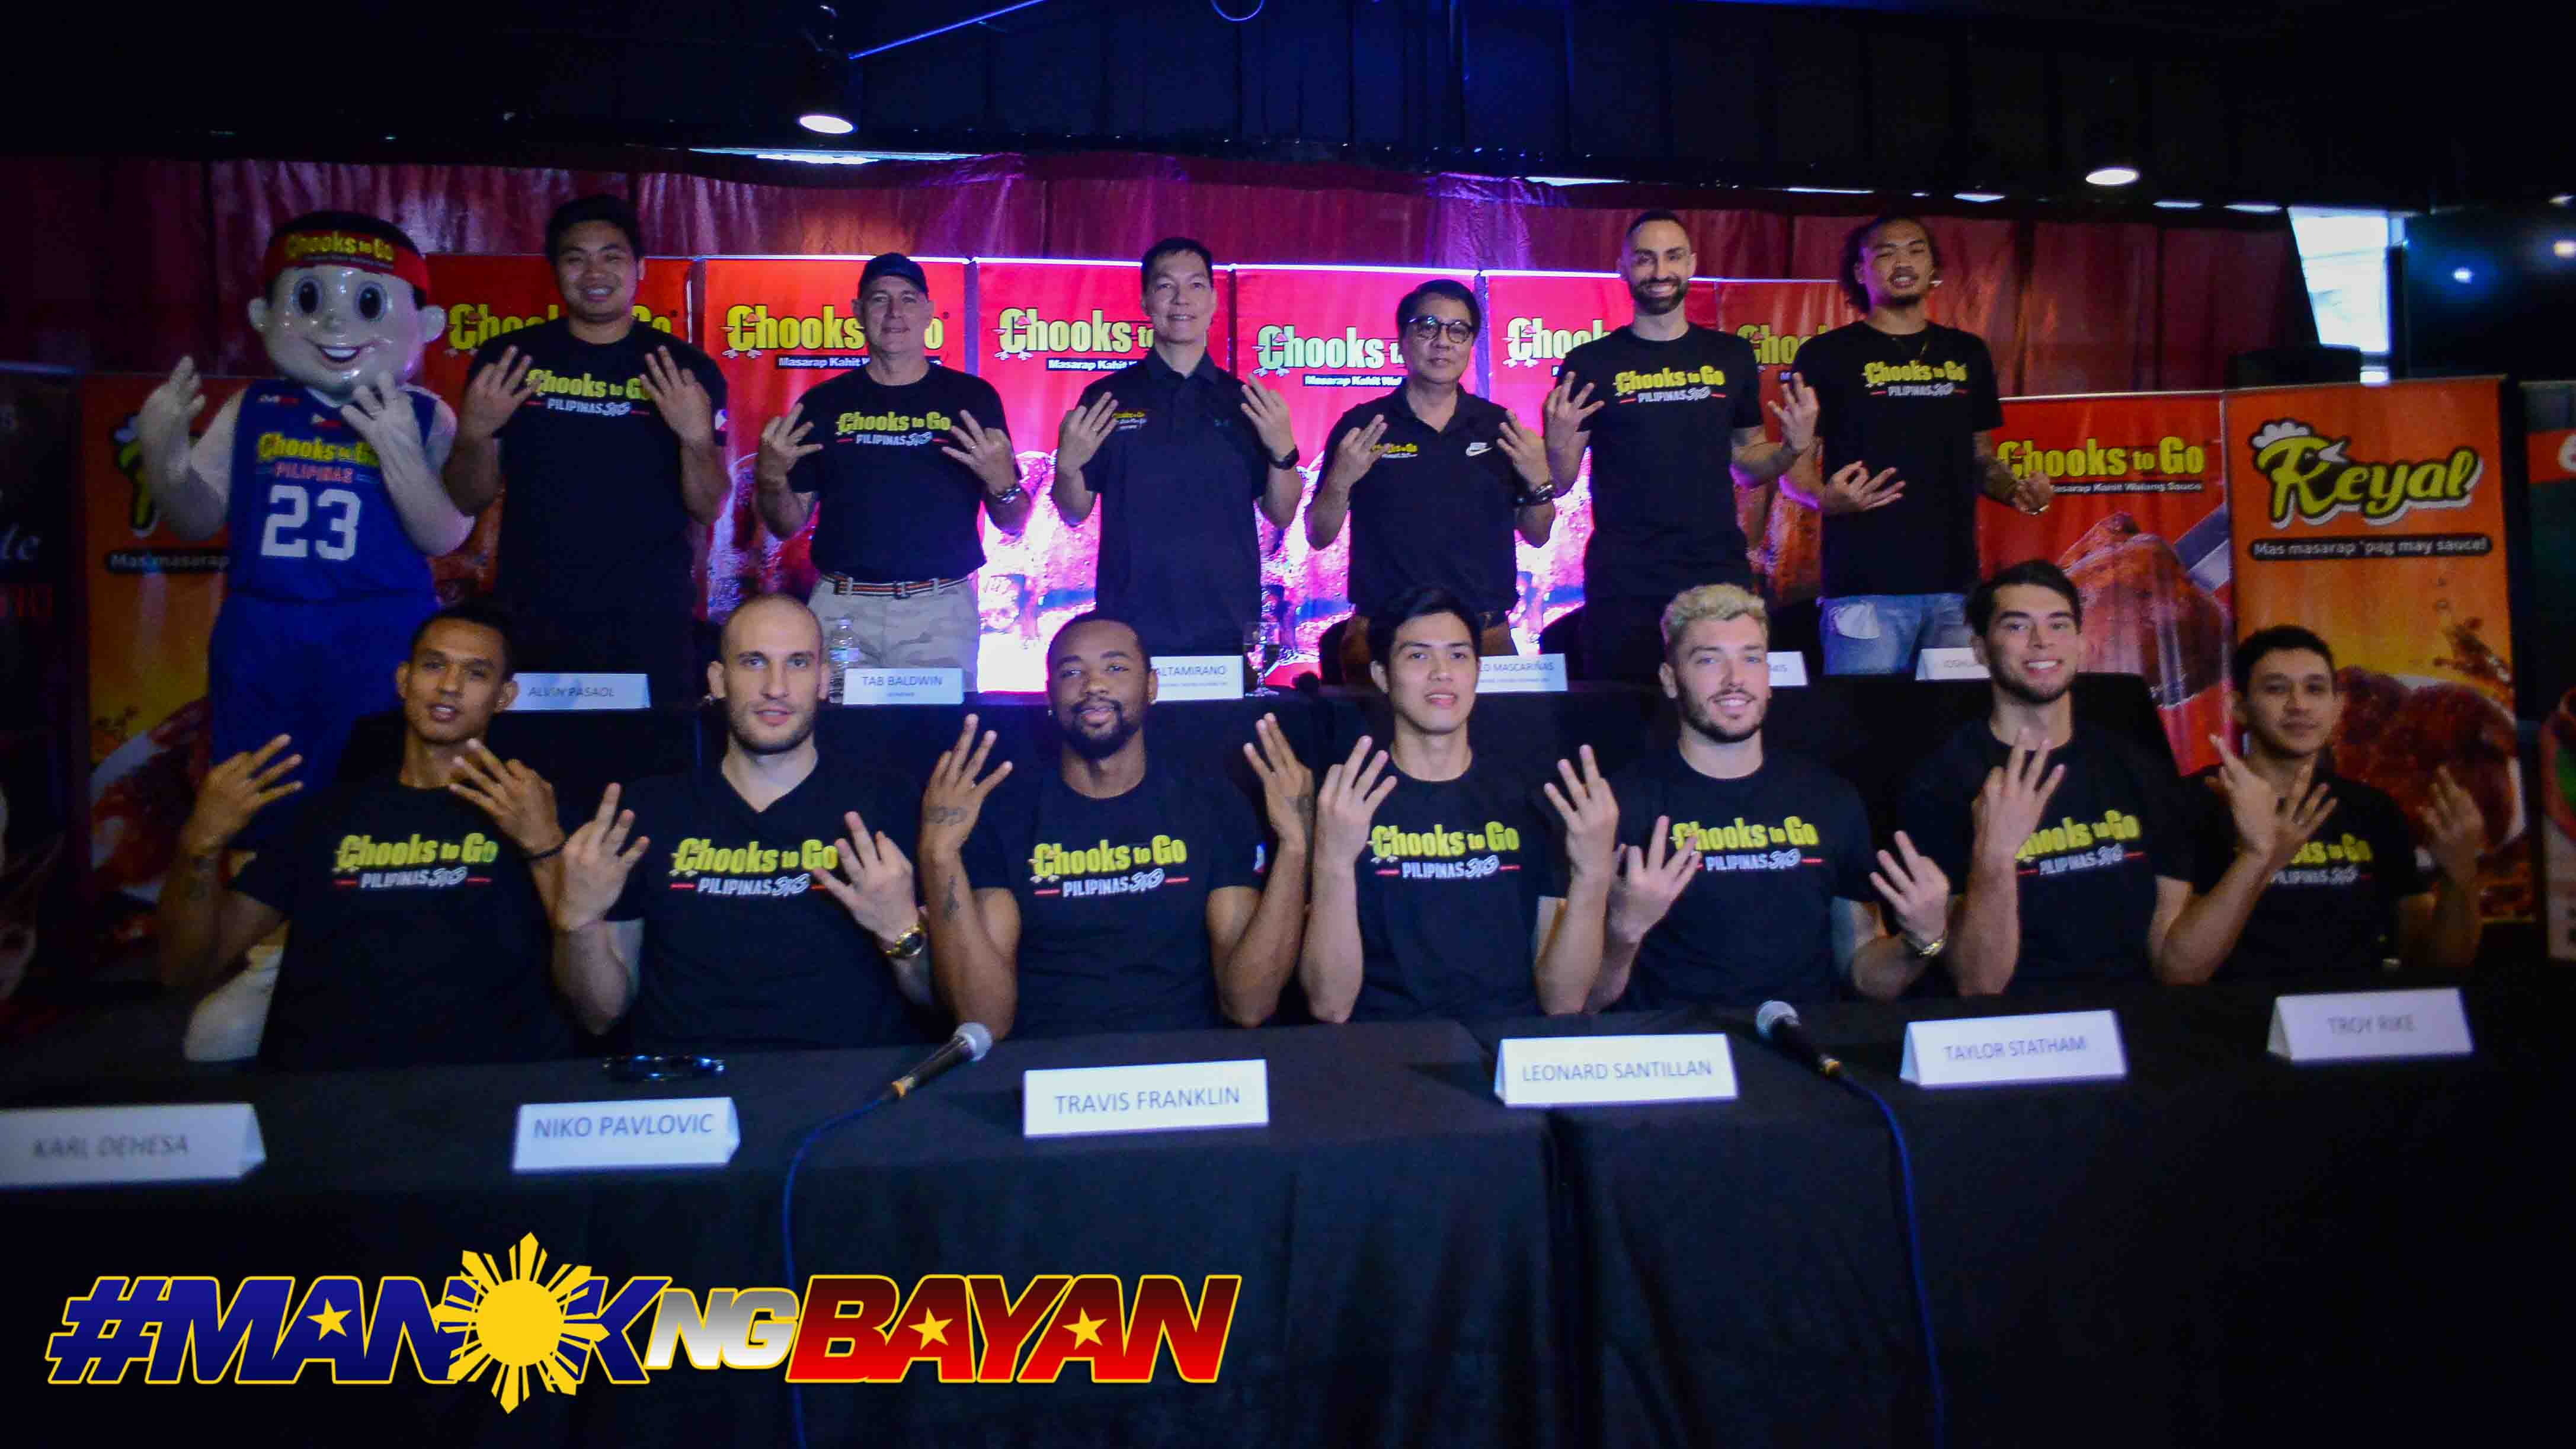 Tiebreaker Times Philippine teams to figure in tough groups in World Tour Doha 3x3 Basketball Chooks-to-Go Pilipinas 3x3 News  Tab Baldwin Ronald Mascarinas Pasig-Grindhouse Kings Eric Altamirano Bataan Risers 2019 FIBA World Tour Masters Doha